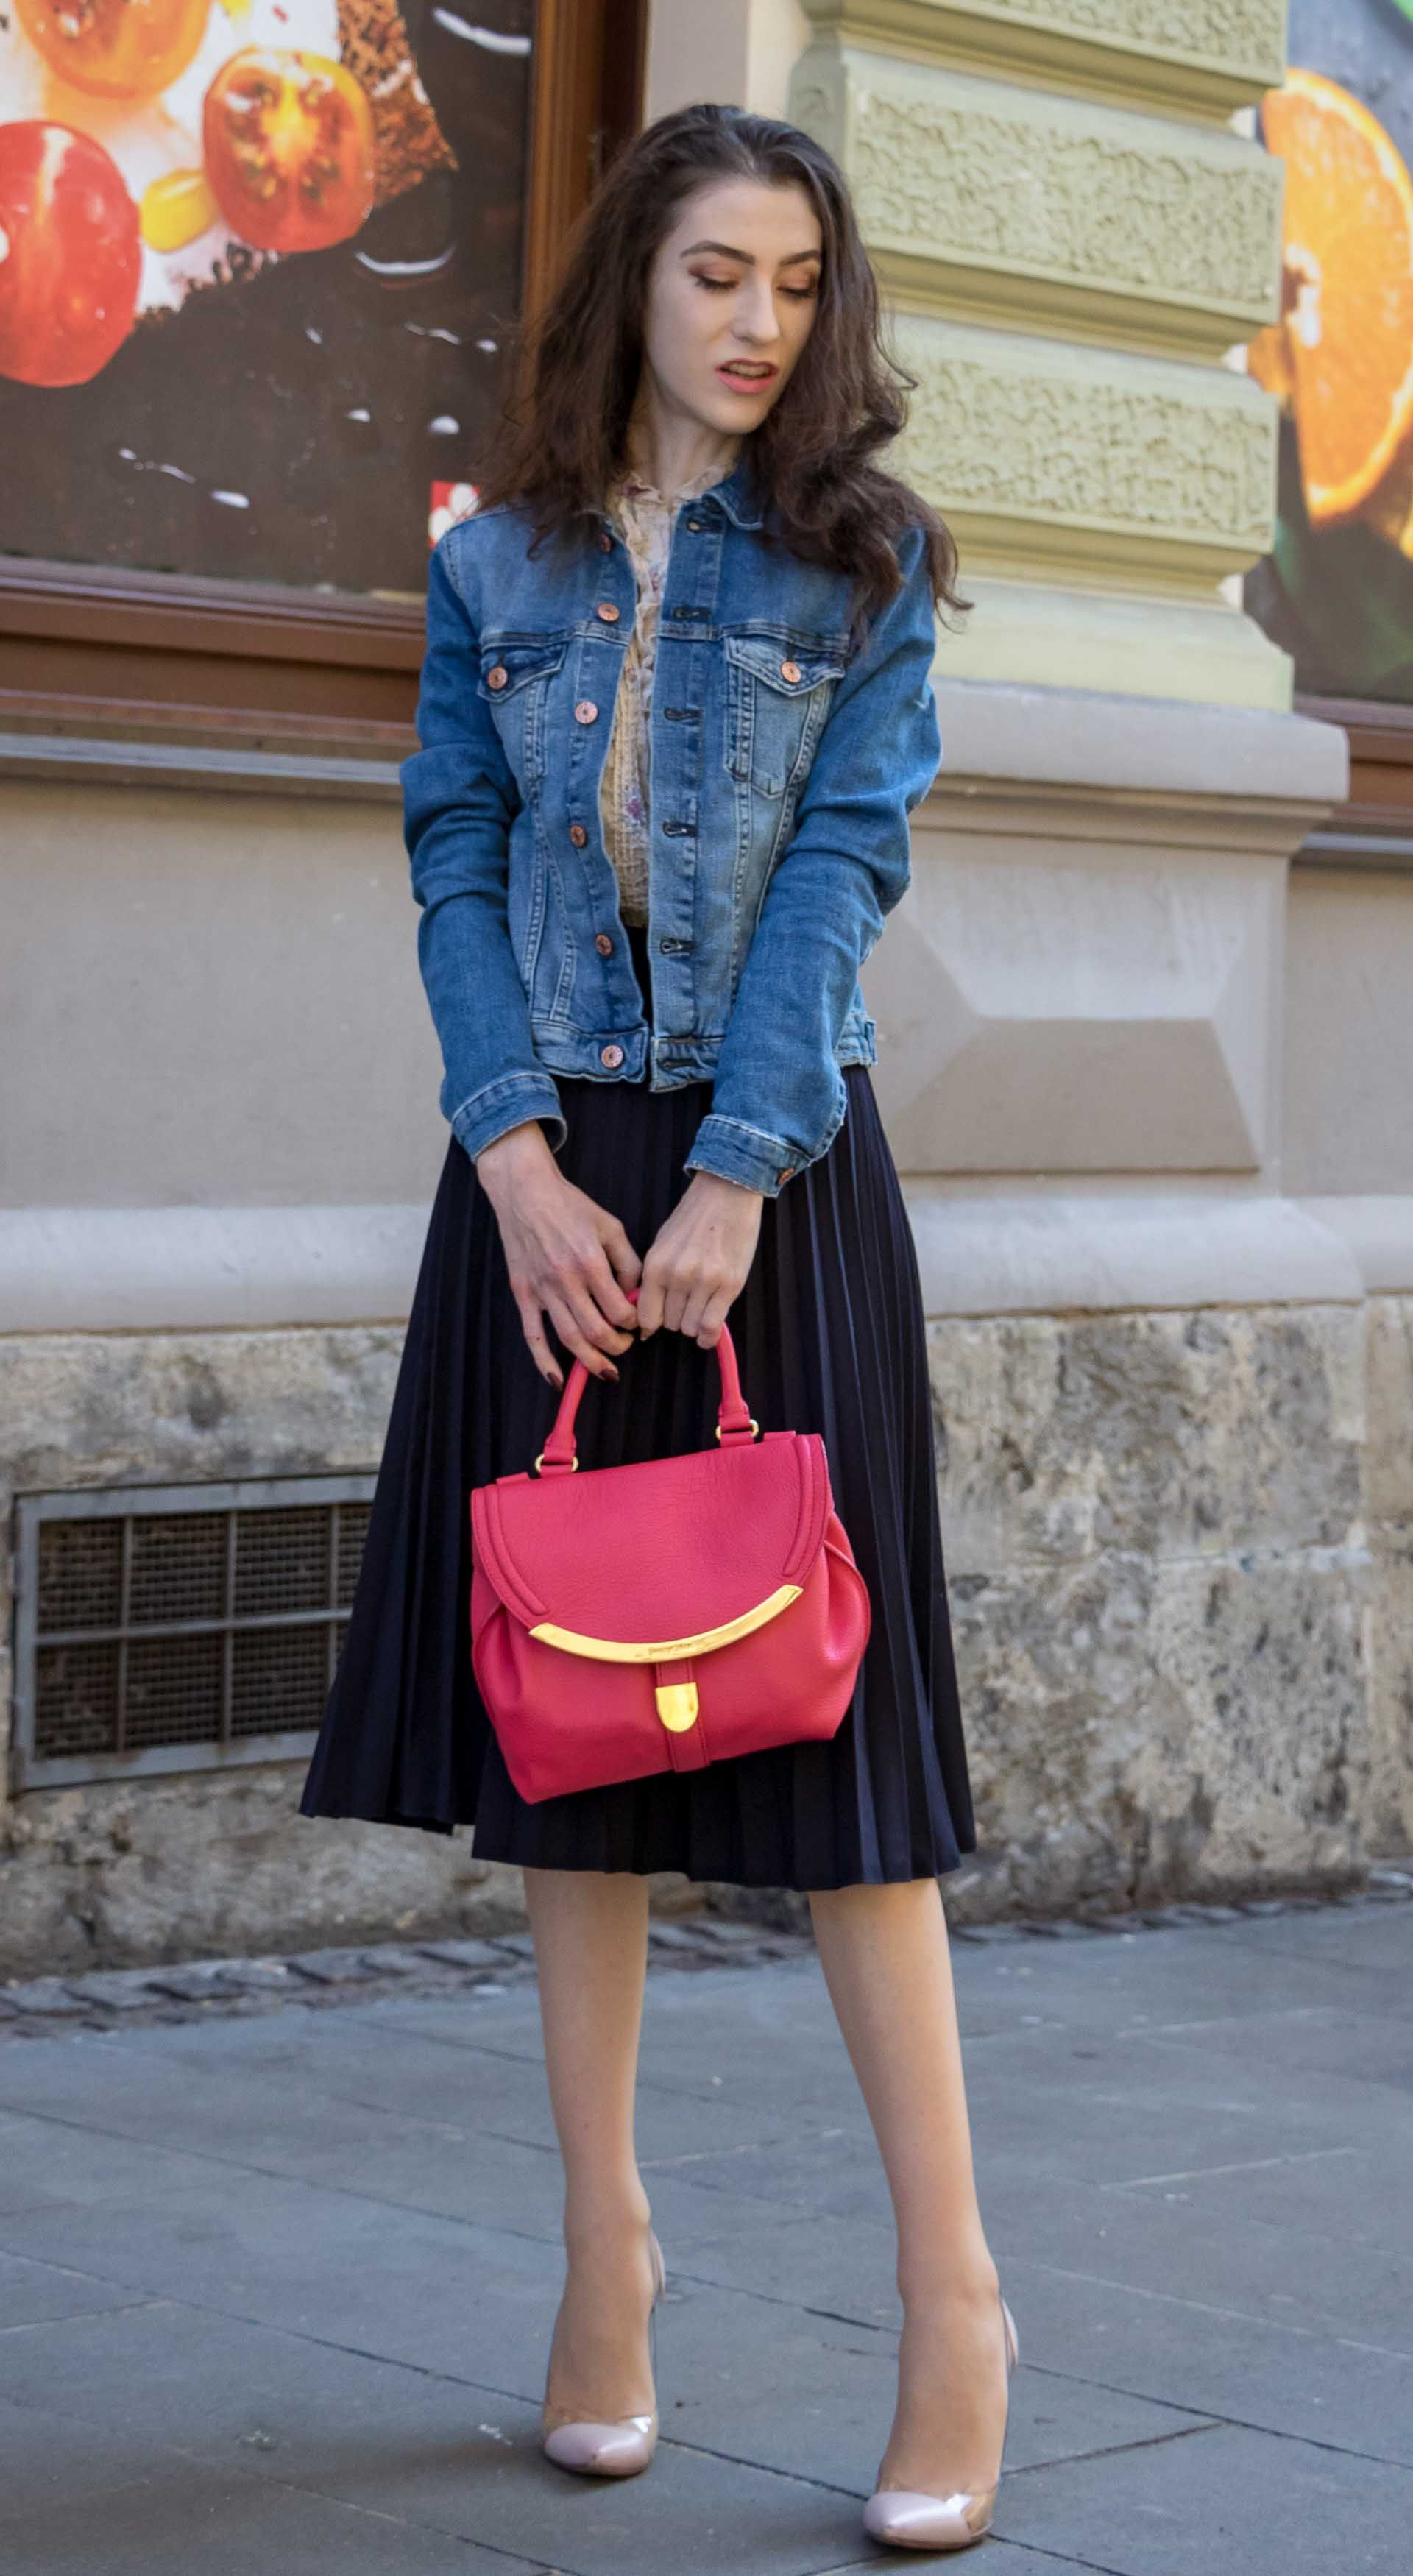 d9bc0b94c9 Fashion Blogger Veronika Lipar of Brunette from Wall Street sharing how to  style elegant pleated midi skirt with denim jacket for brunch #fashion  #blogpost ...